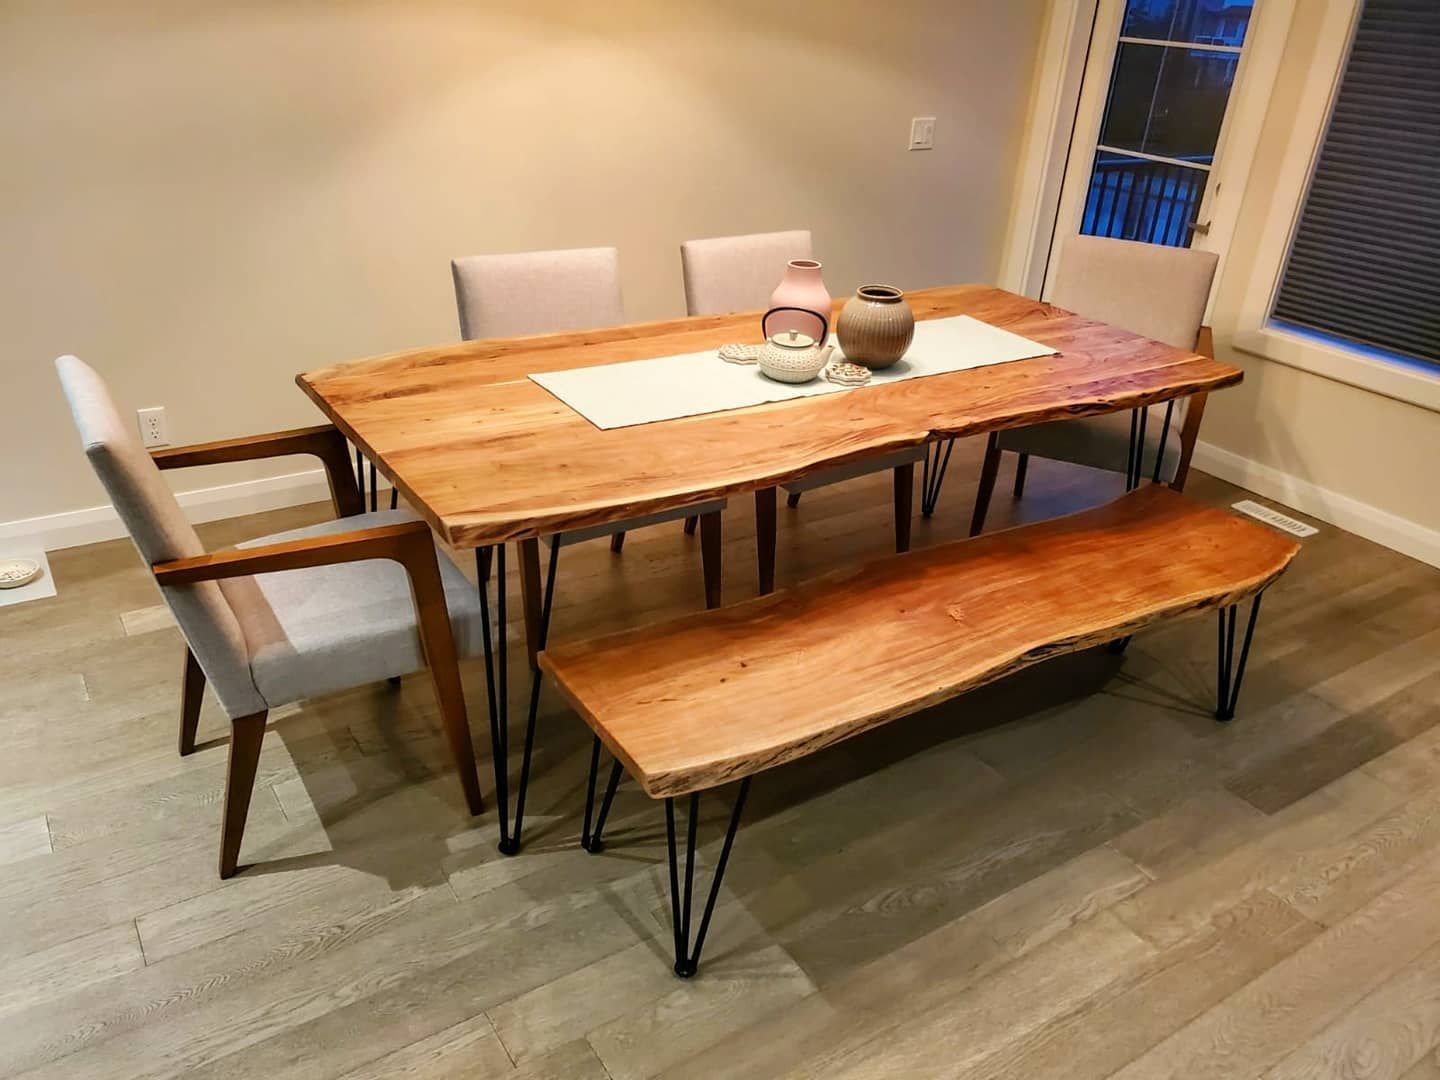 Our new dining table 😍 #modern #chic #minimalist #ikea #structube #diningtable #sleek #interiordesign #woodentable #mystructubestyle #ikeahome #modernstyle #homedesign #comfyhome #furniture #modernfurniture #modernlook #outwiththeoldinwiththenew Table & chairs from structube Vases from ikeacanada